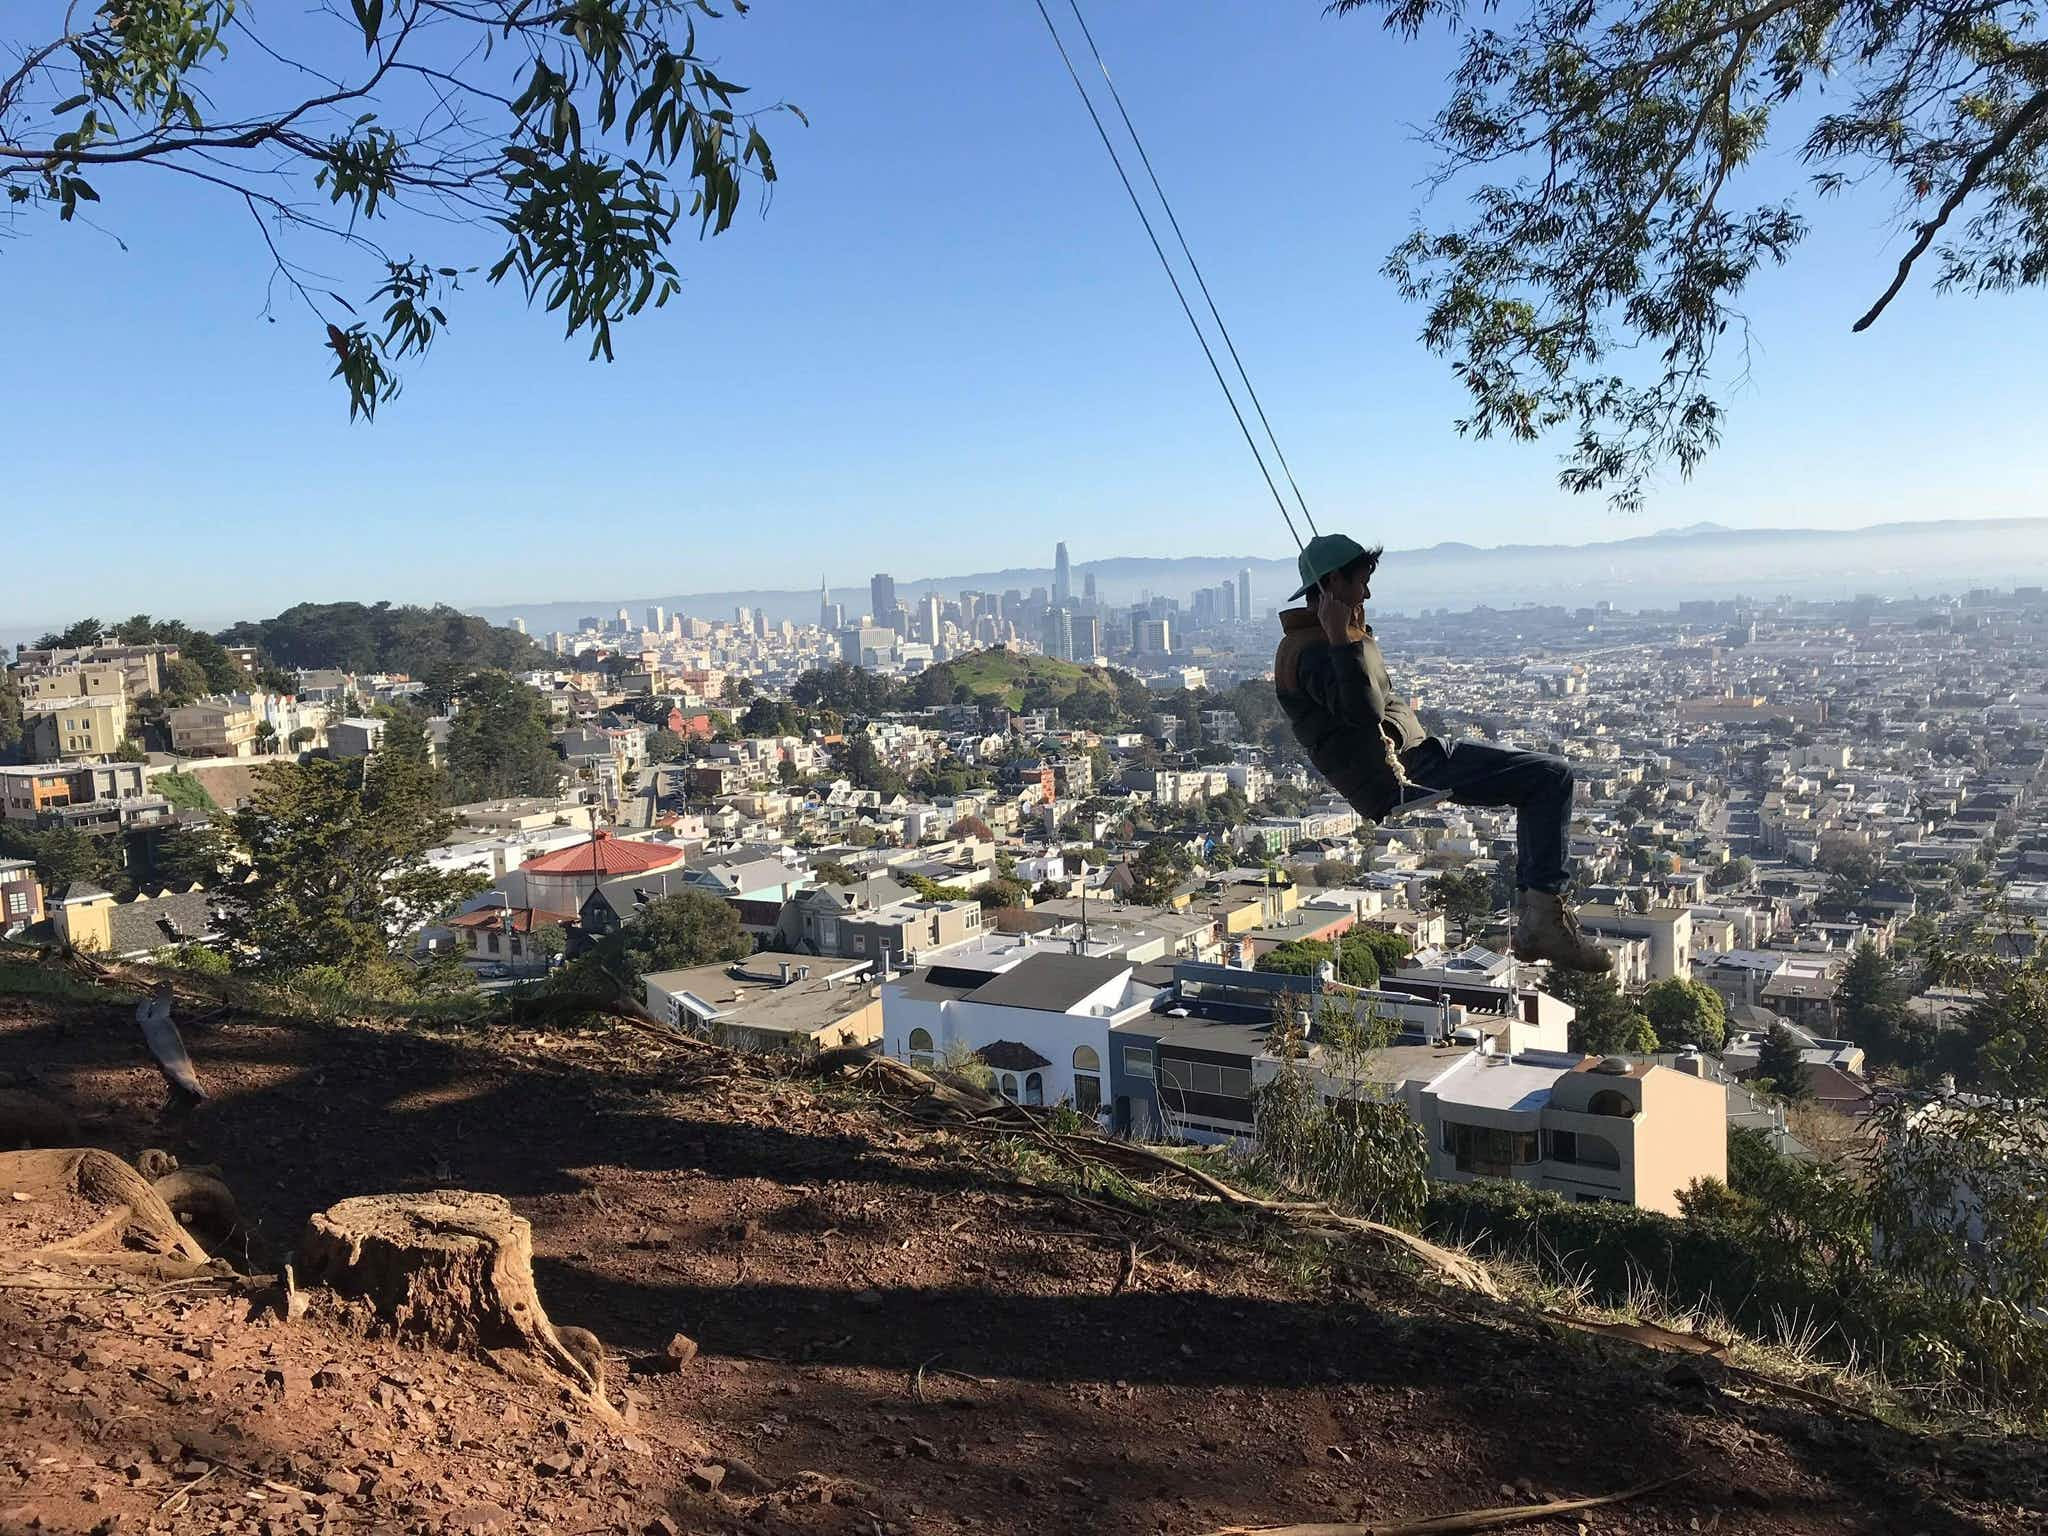 Discover why rope swings are appearing all over San Francisco